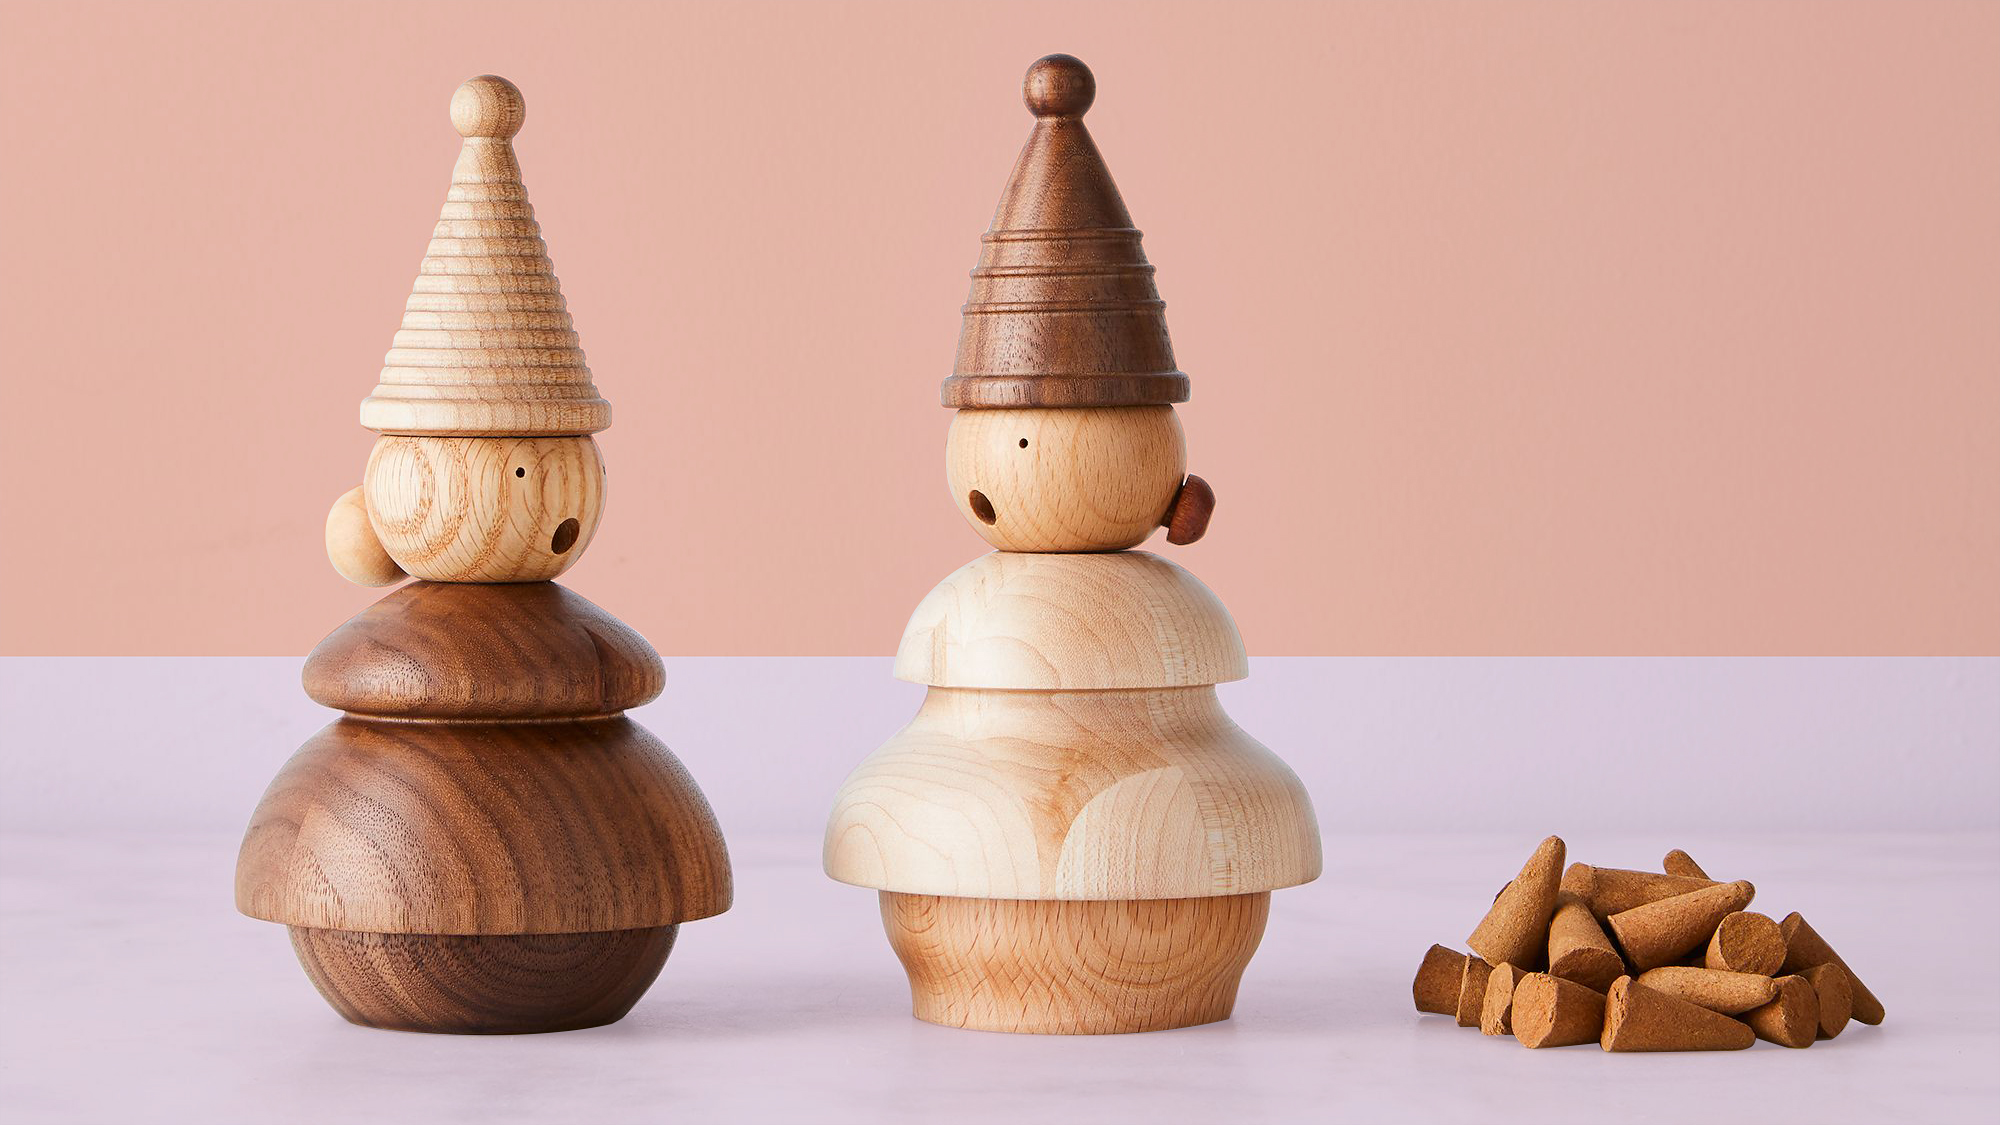 Best Housewarming gifts, ideas - Incense gnomes on pinkish background tout